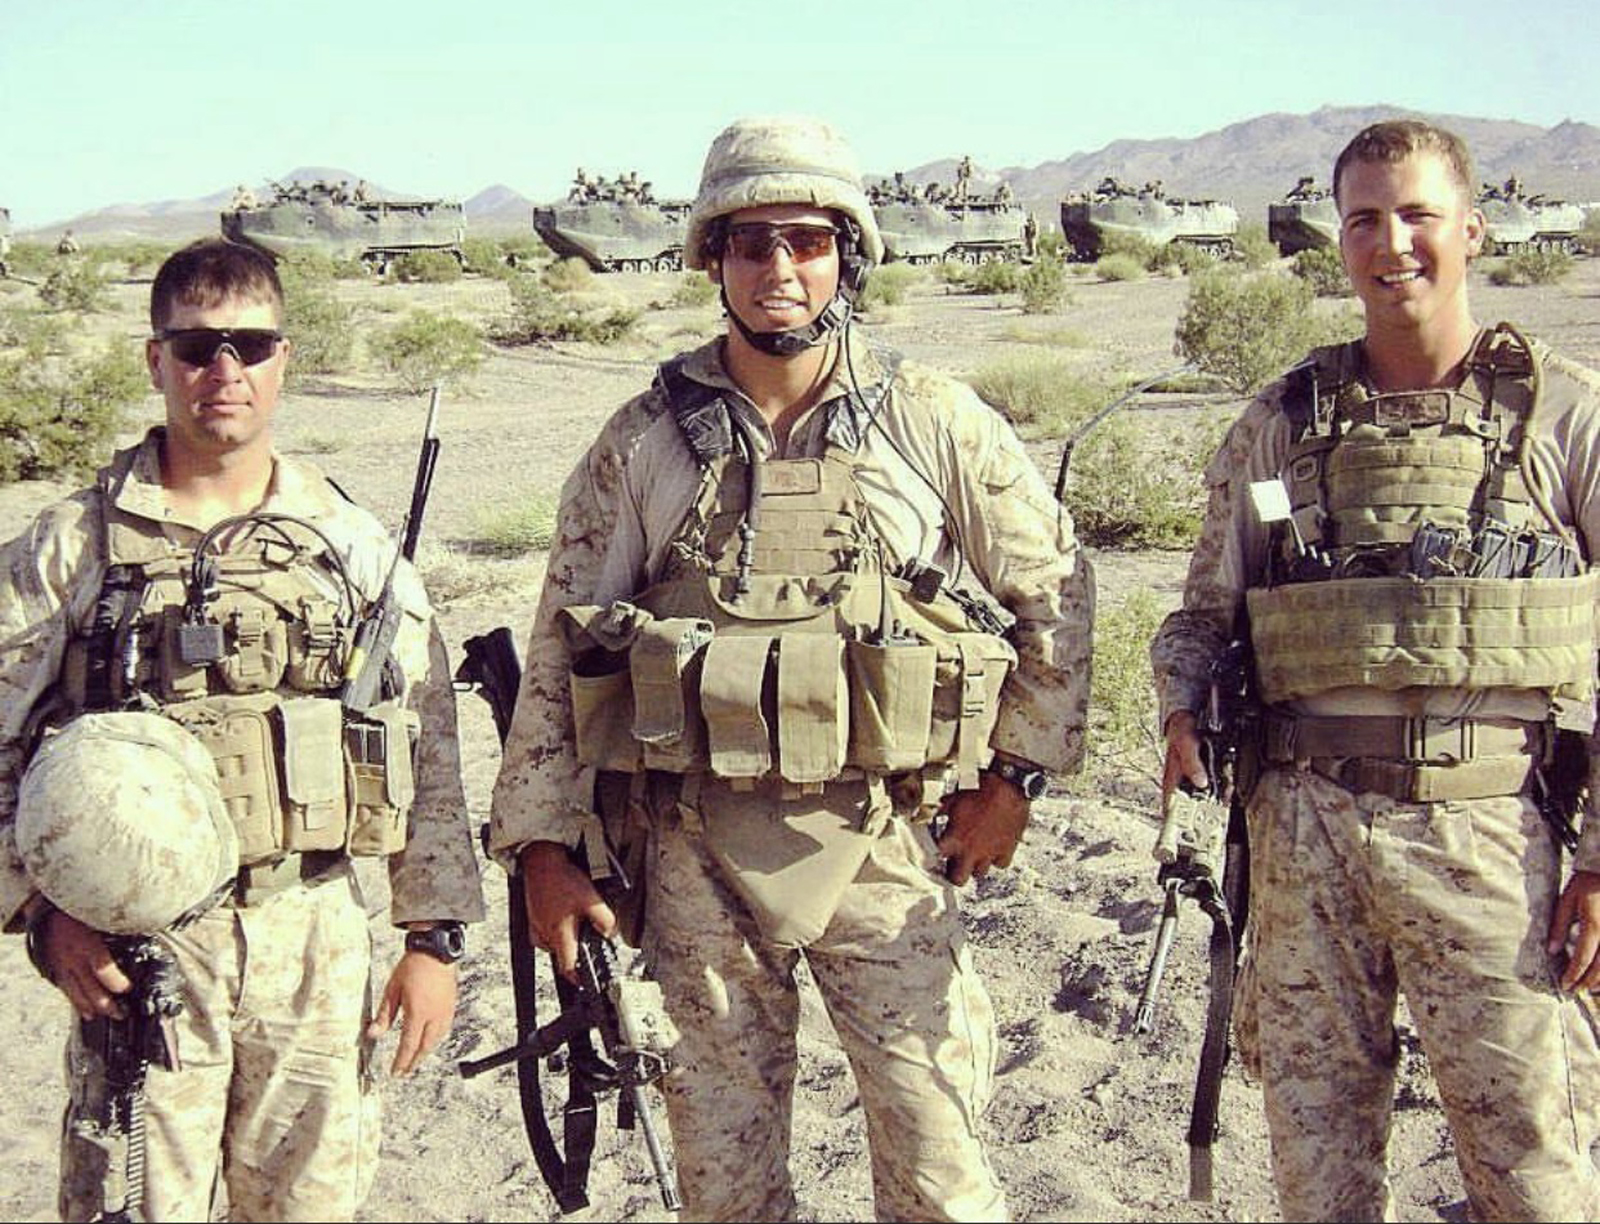 Marine Maj. Thomas Schueman (right), a Chicago native, in Afghanistan. The Marist High School grad is trying to get an interpreter who he says helped save him and others out of that country and, with his family, allowed to move to the United States. The interpreter says his life has been threatened by the Taliban. But his U.S. visa application is in limbo. At left is Lt. William Donnelly, a friend of Schueman who was killed in action. Center is First Lt. Cameron West.